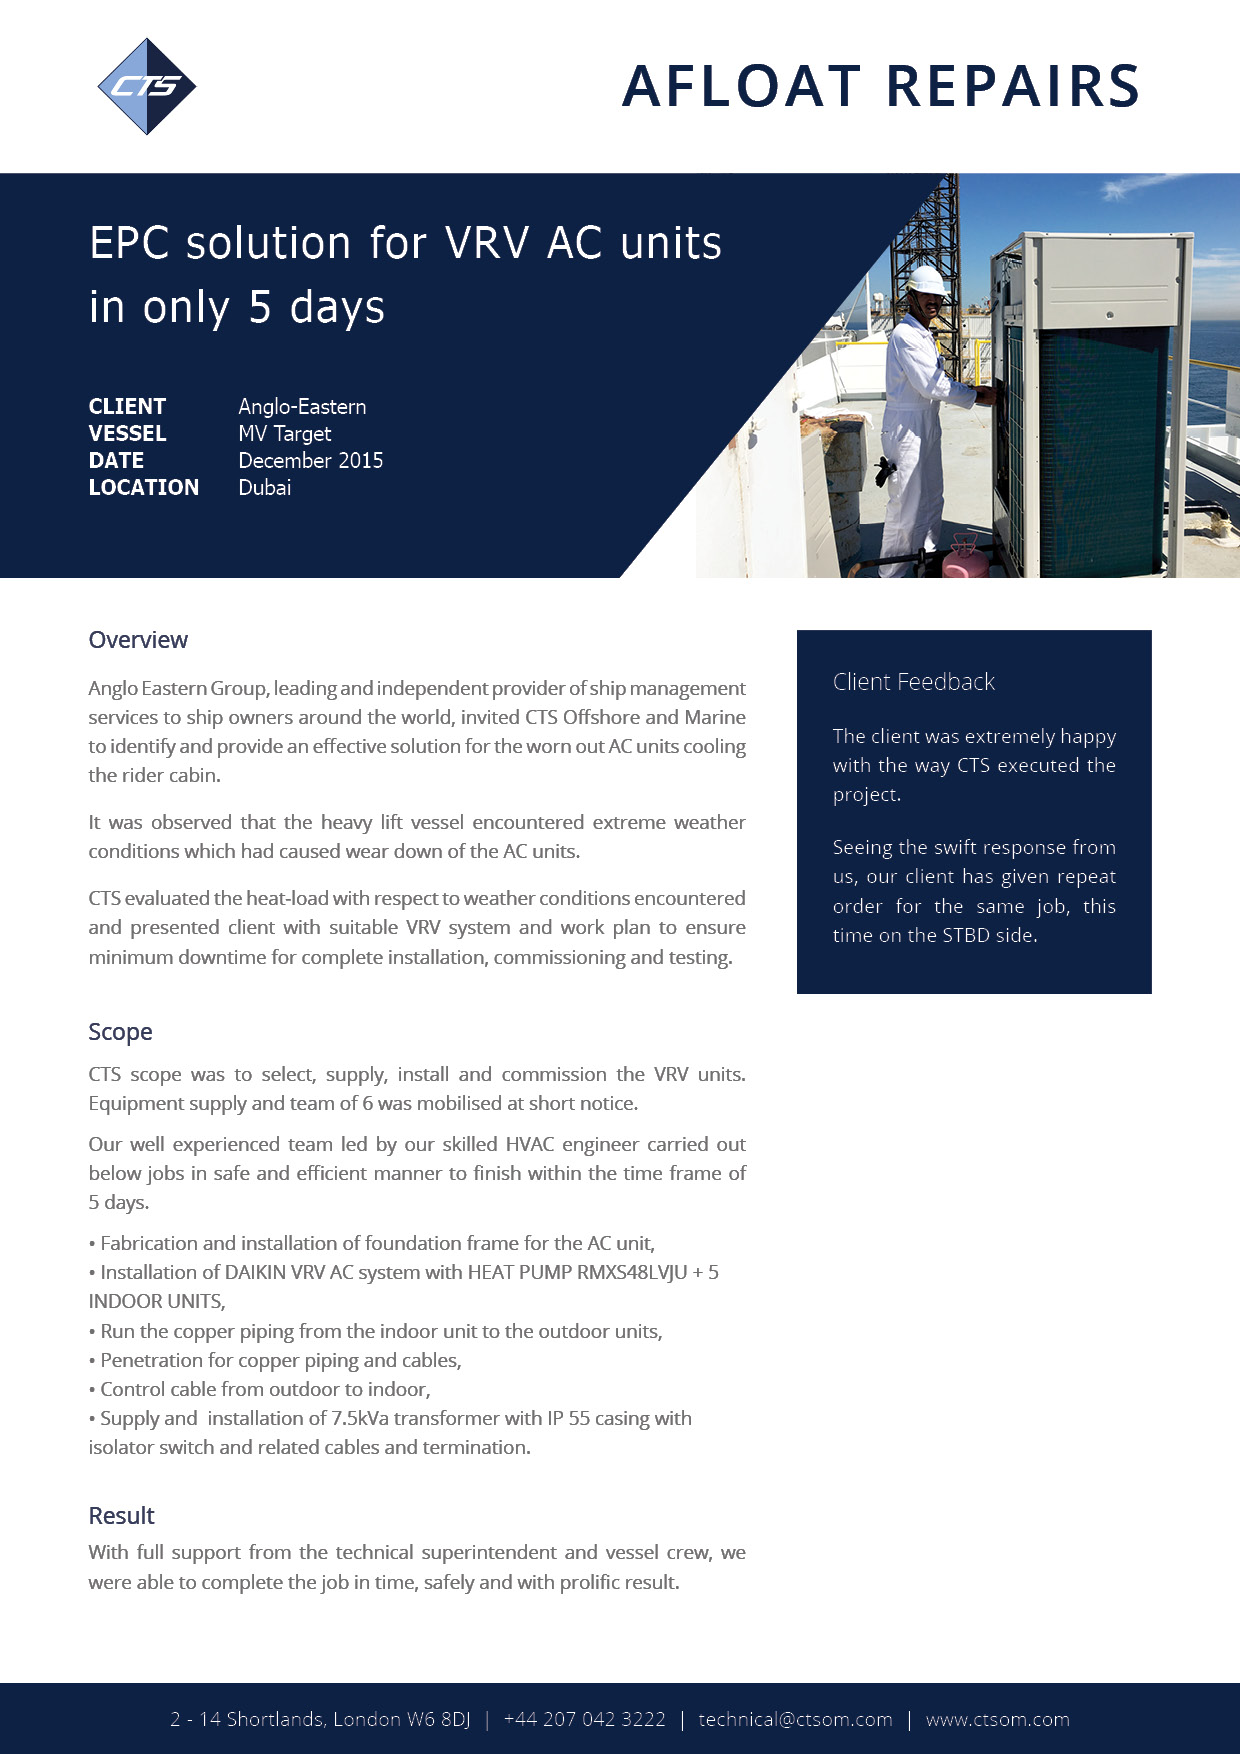 Downloads | CTS Offshore and Marine Limited